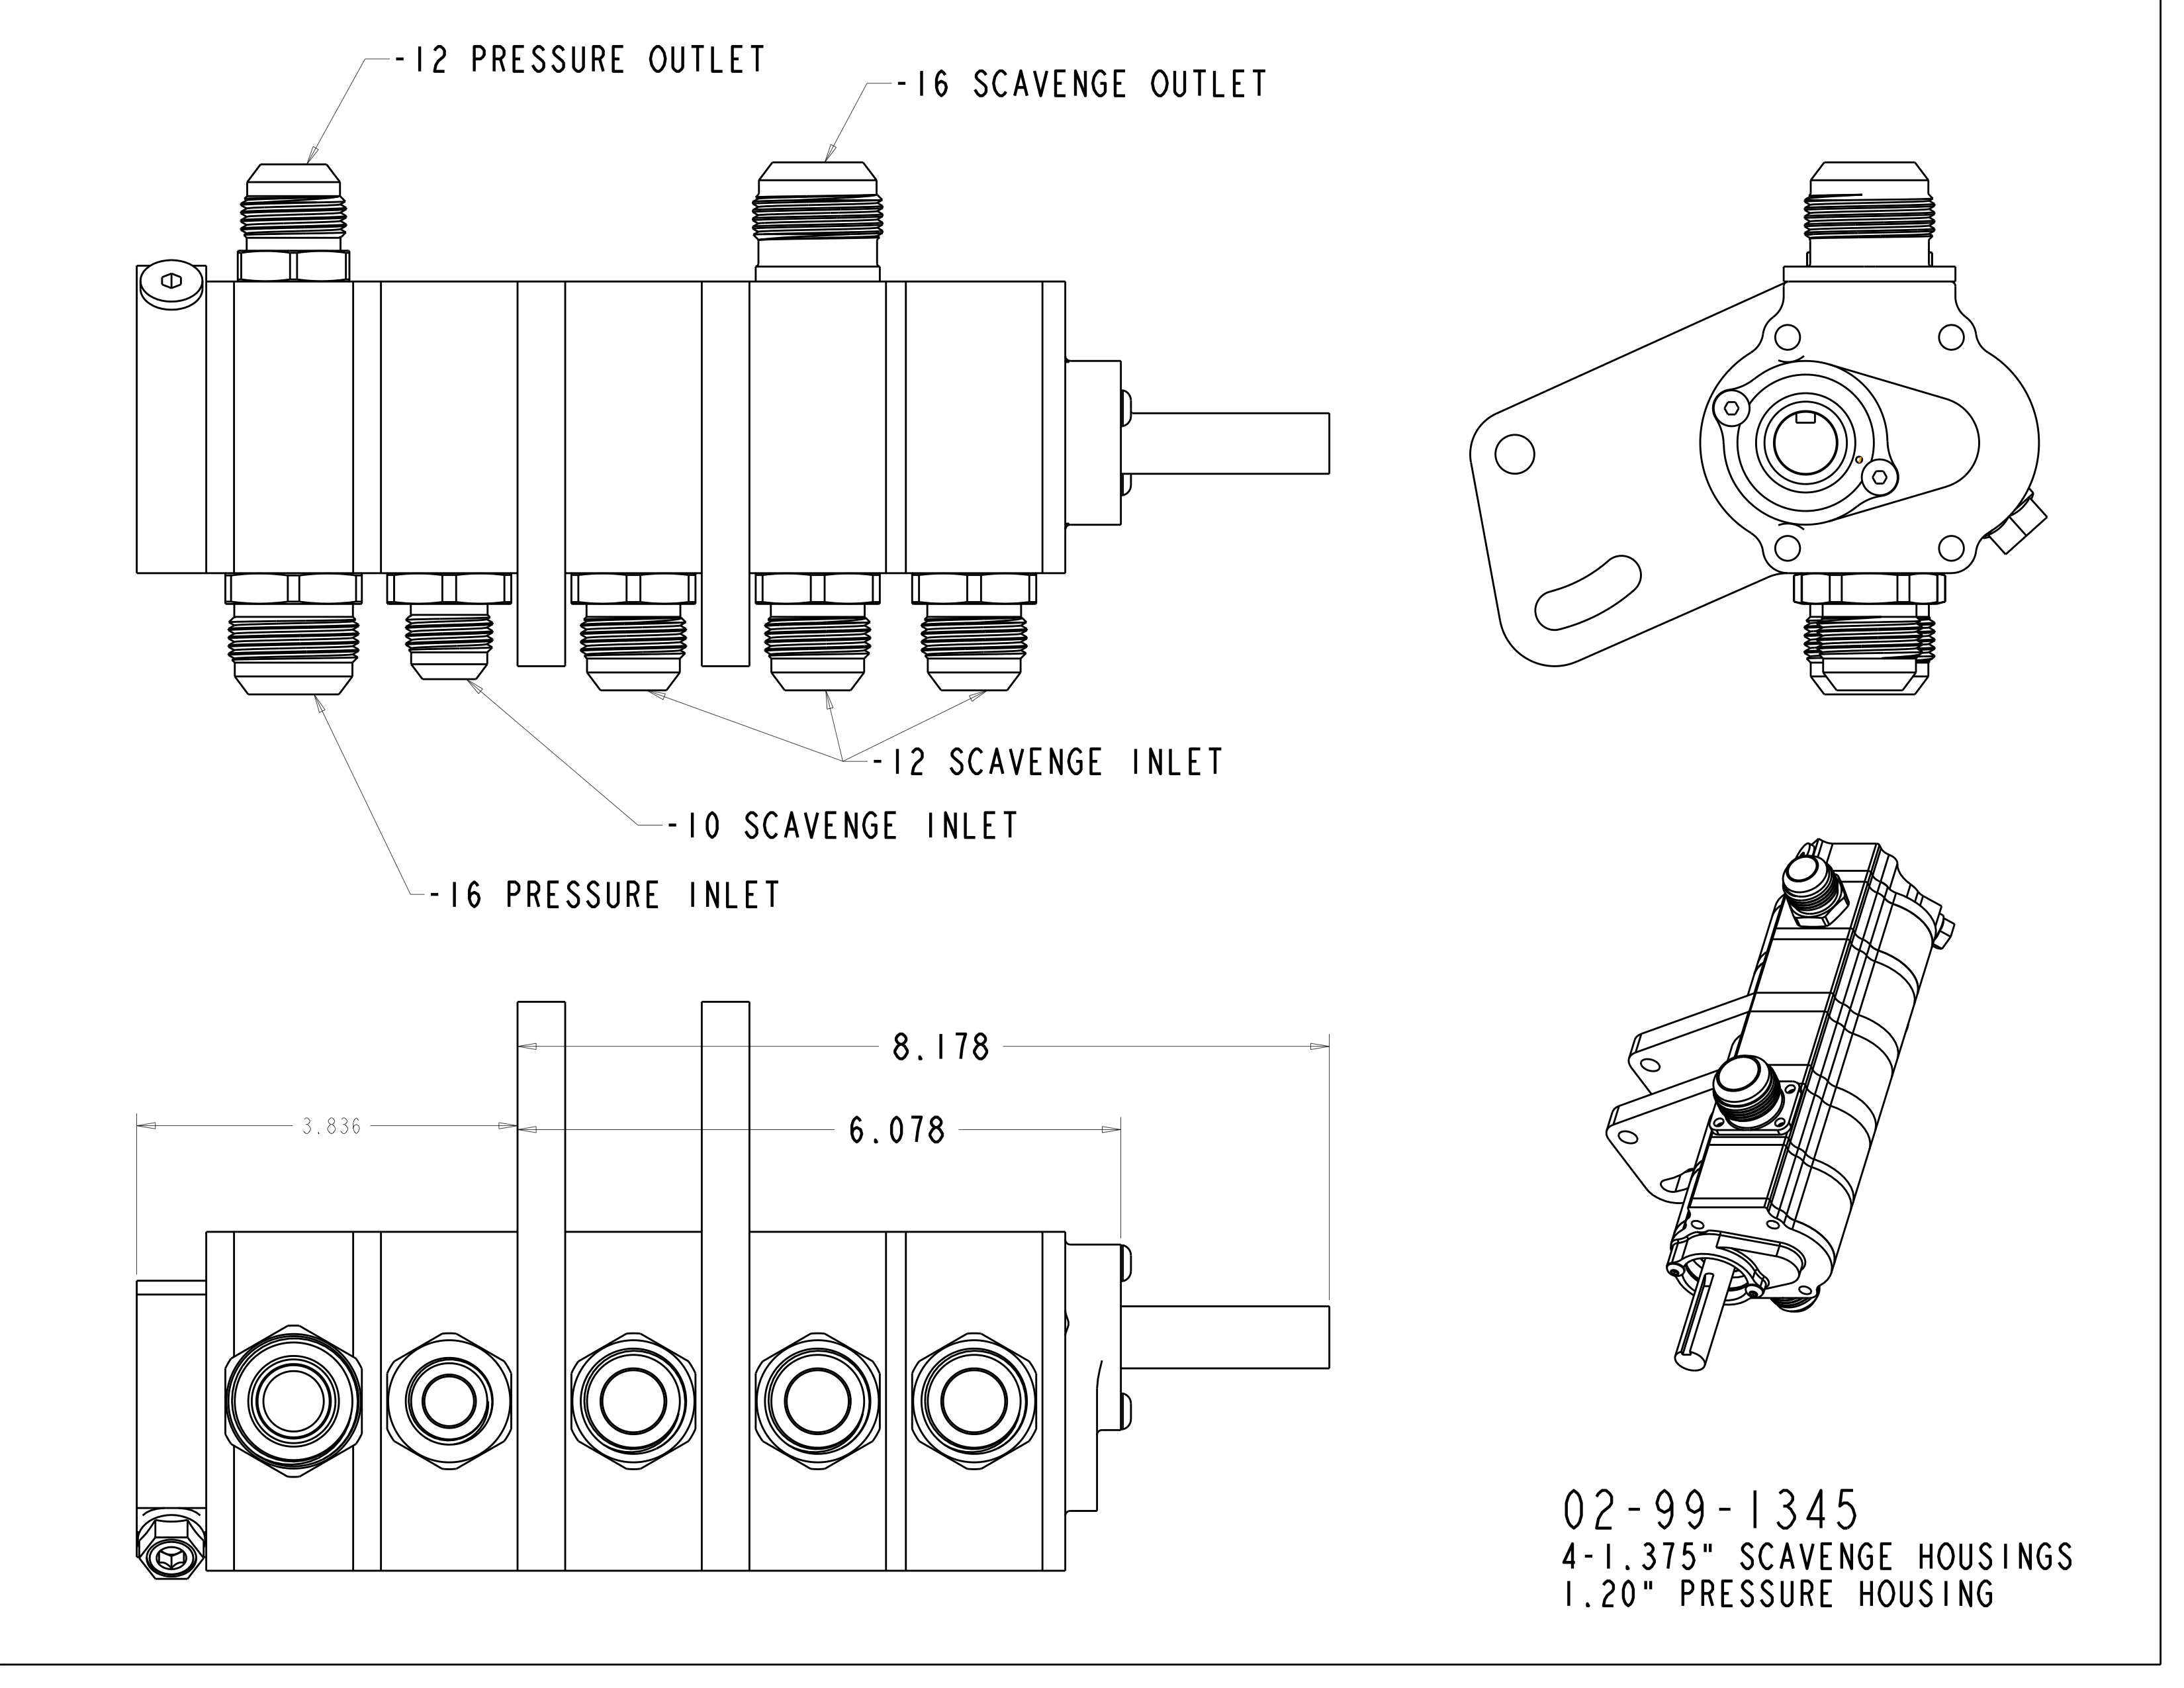 corsa c sri fuse box with Astra H Fuse Box Horn Astra Wiring Diagrams Instruction on Astra H Fuse Box Horn Astra Wiring Diagrams Instruction likewise